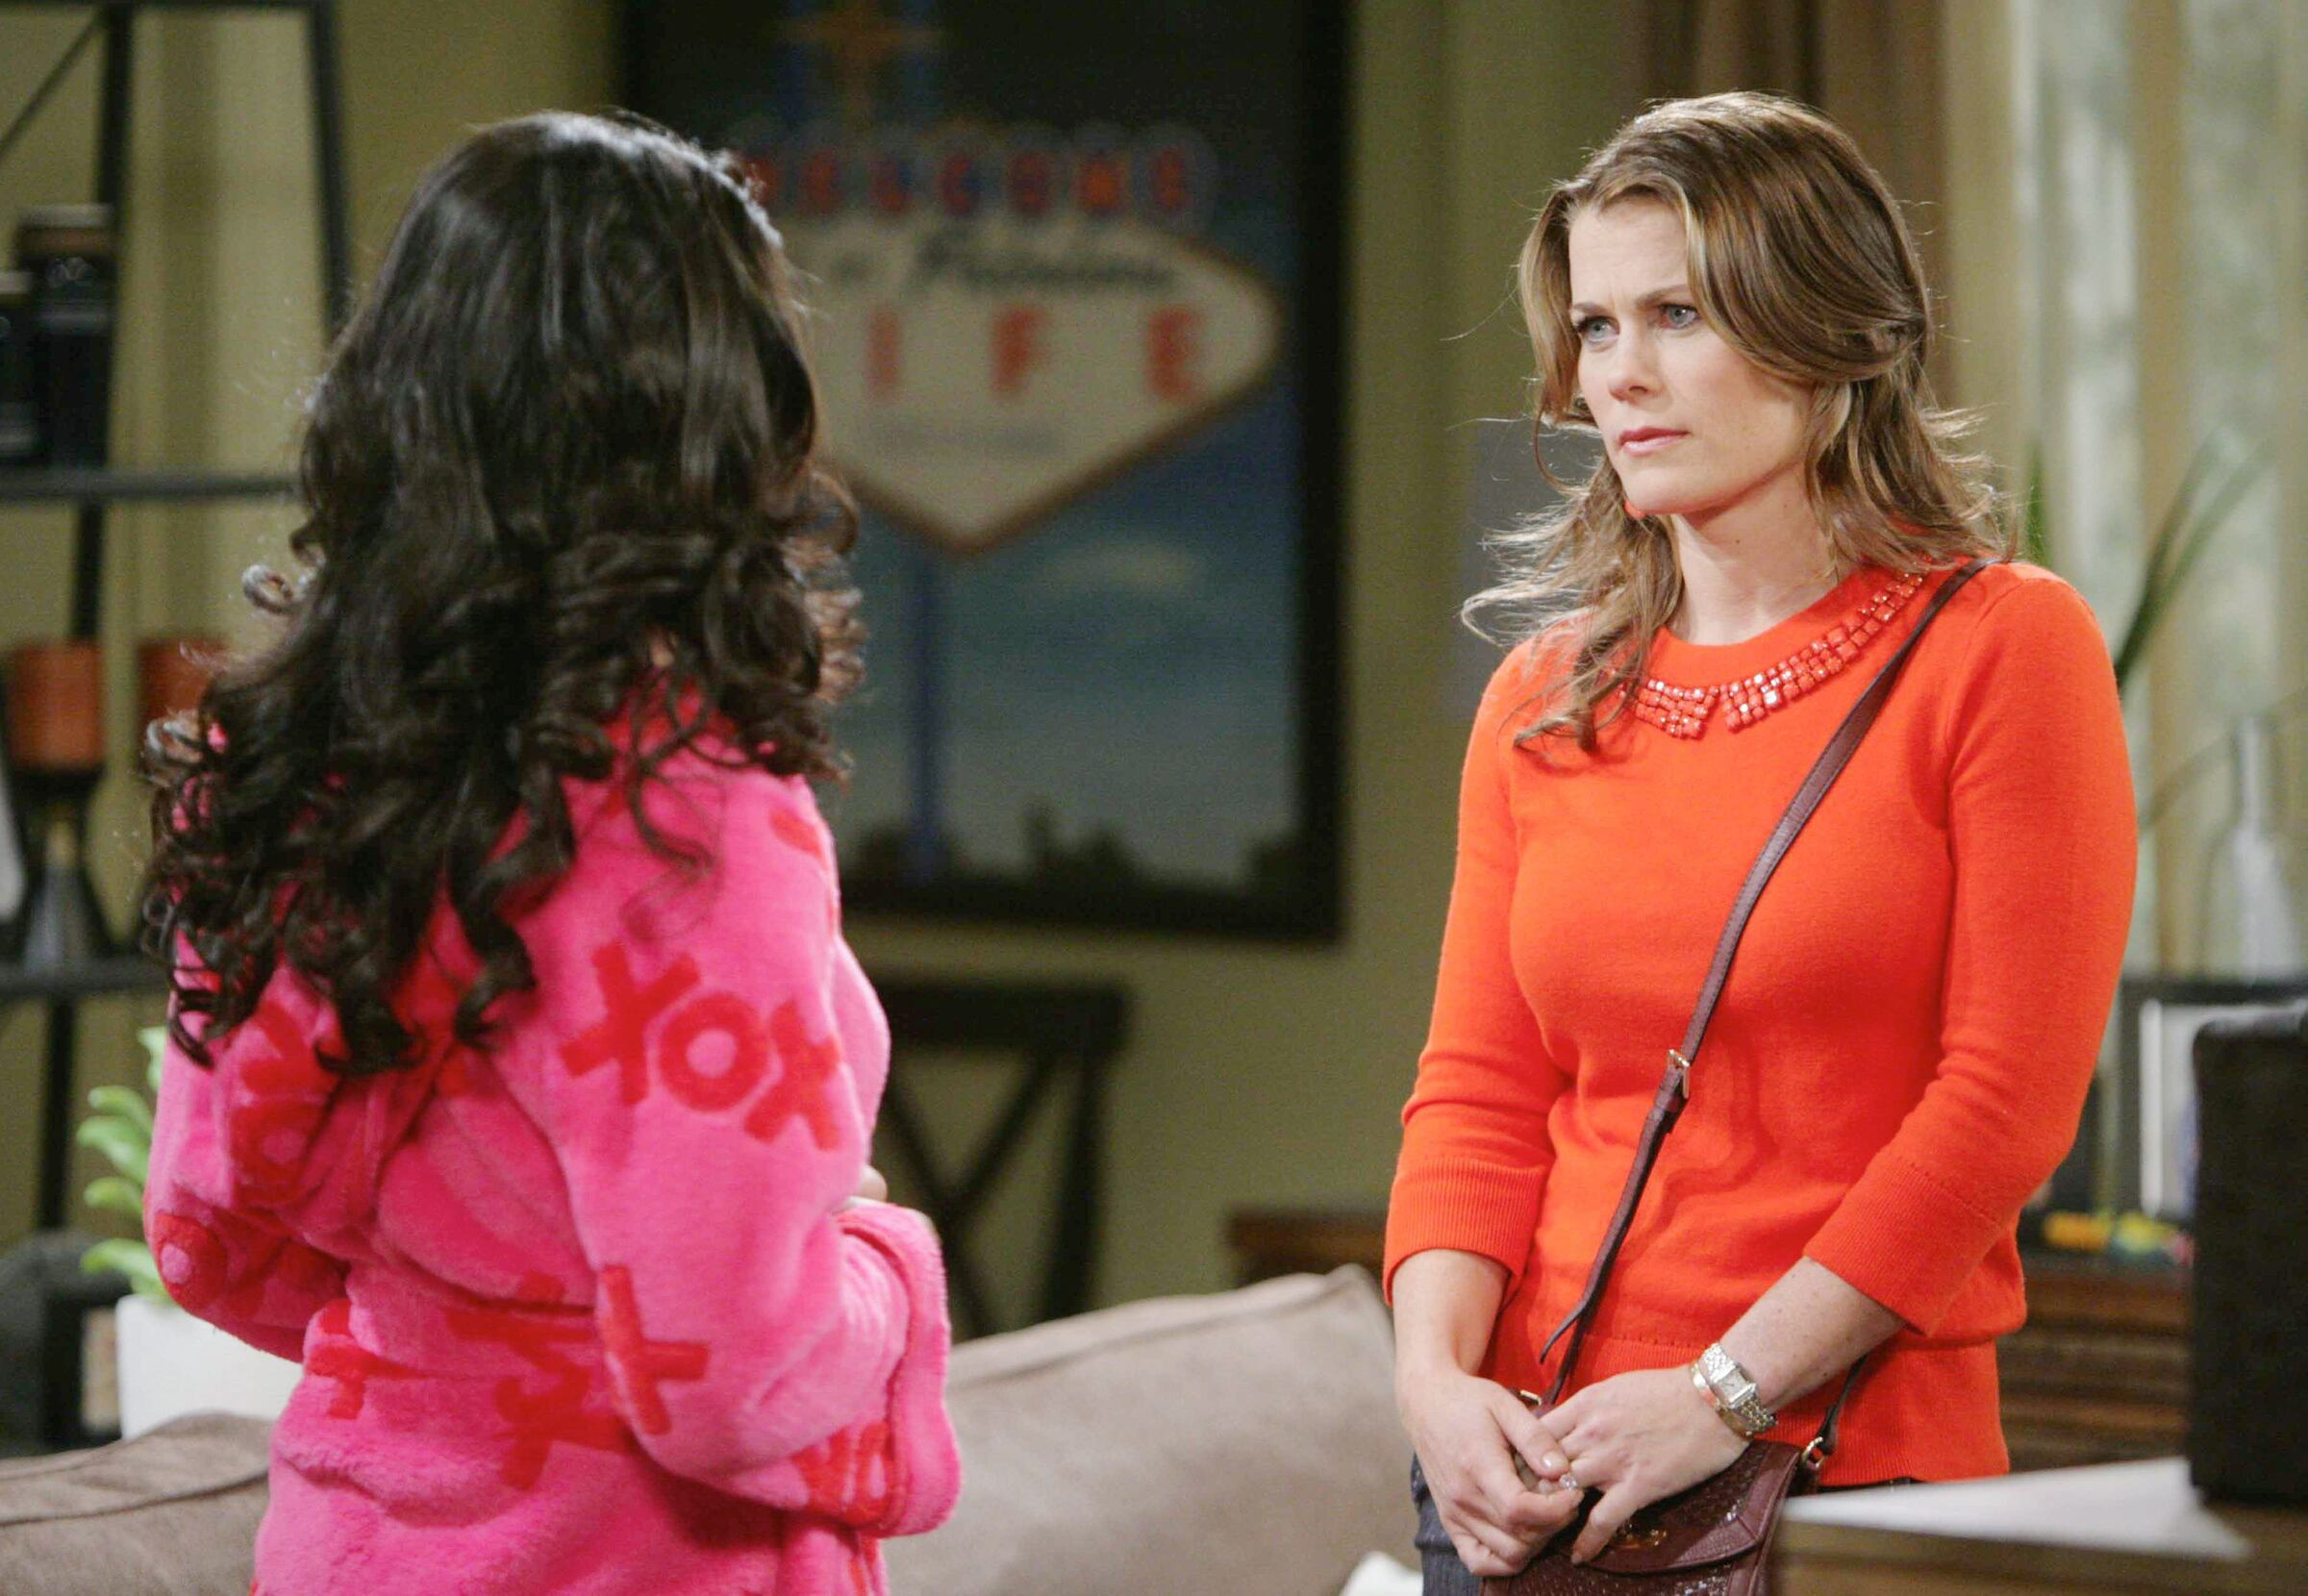 Sami blasts Gabi when she realizes she lied to her about Nick!